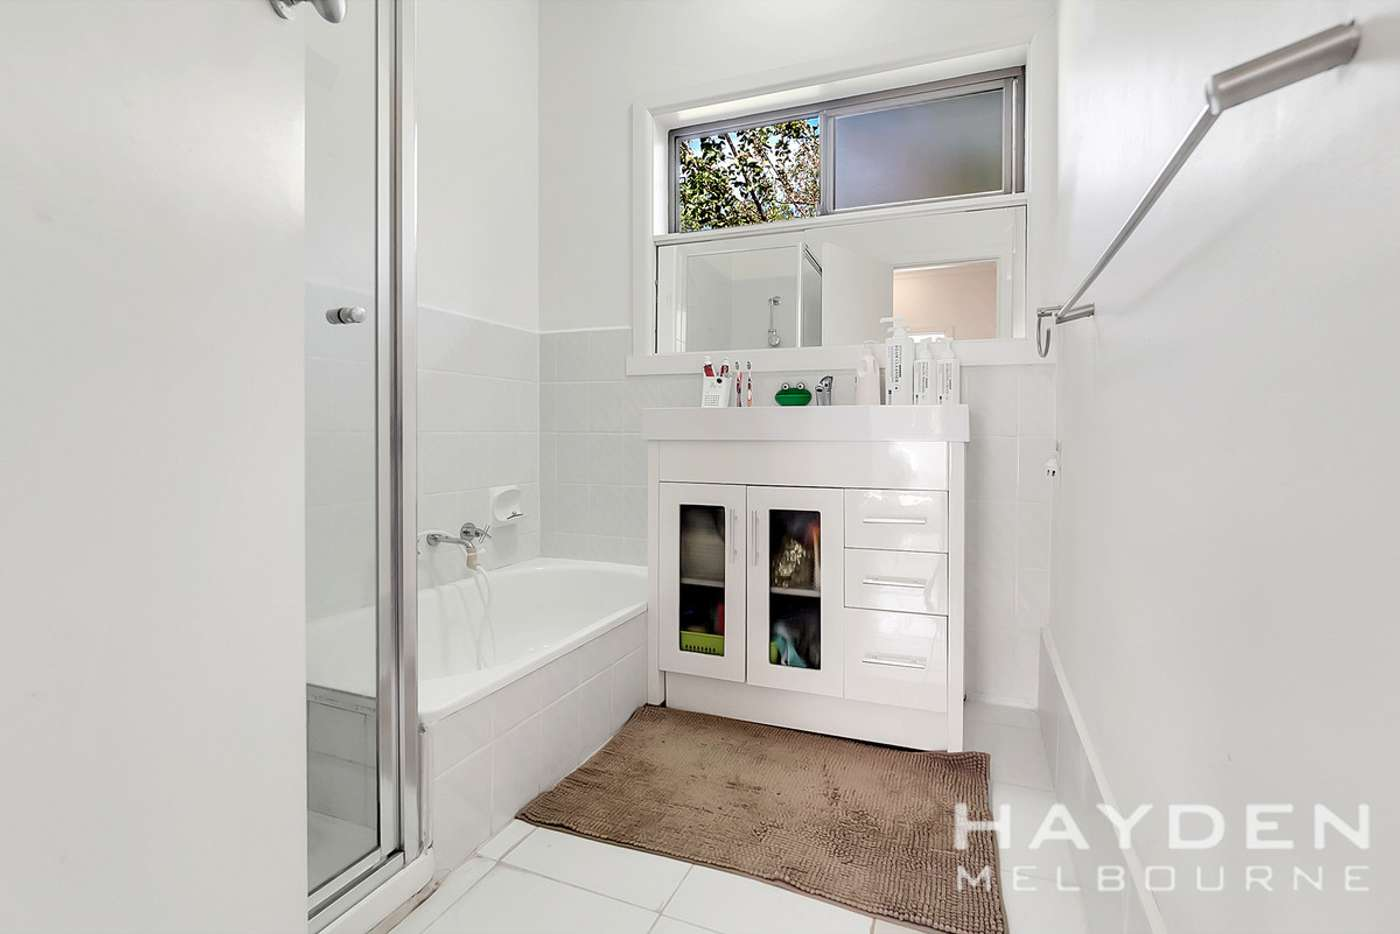 Sixth view of Homely house listing, 4 Besant Street, Hampton East VIC 3188